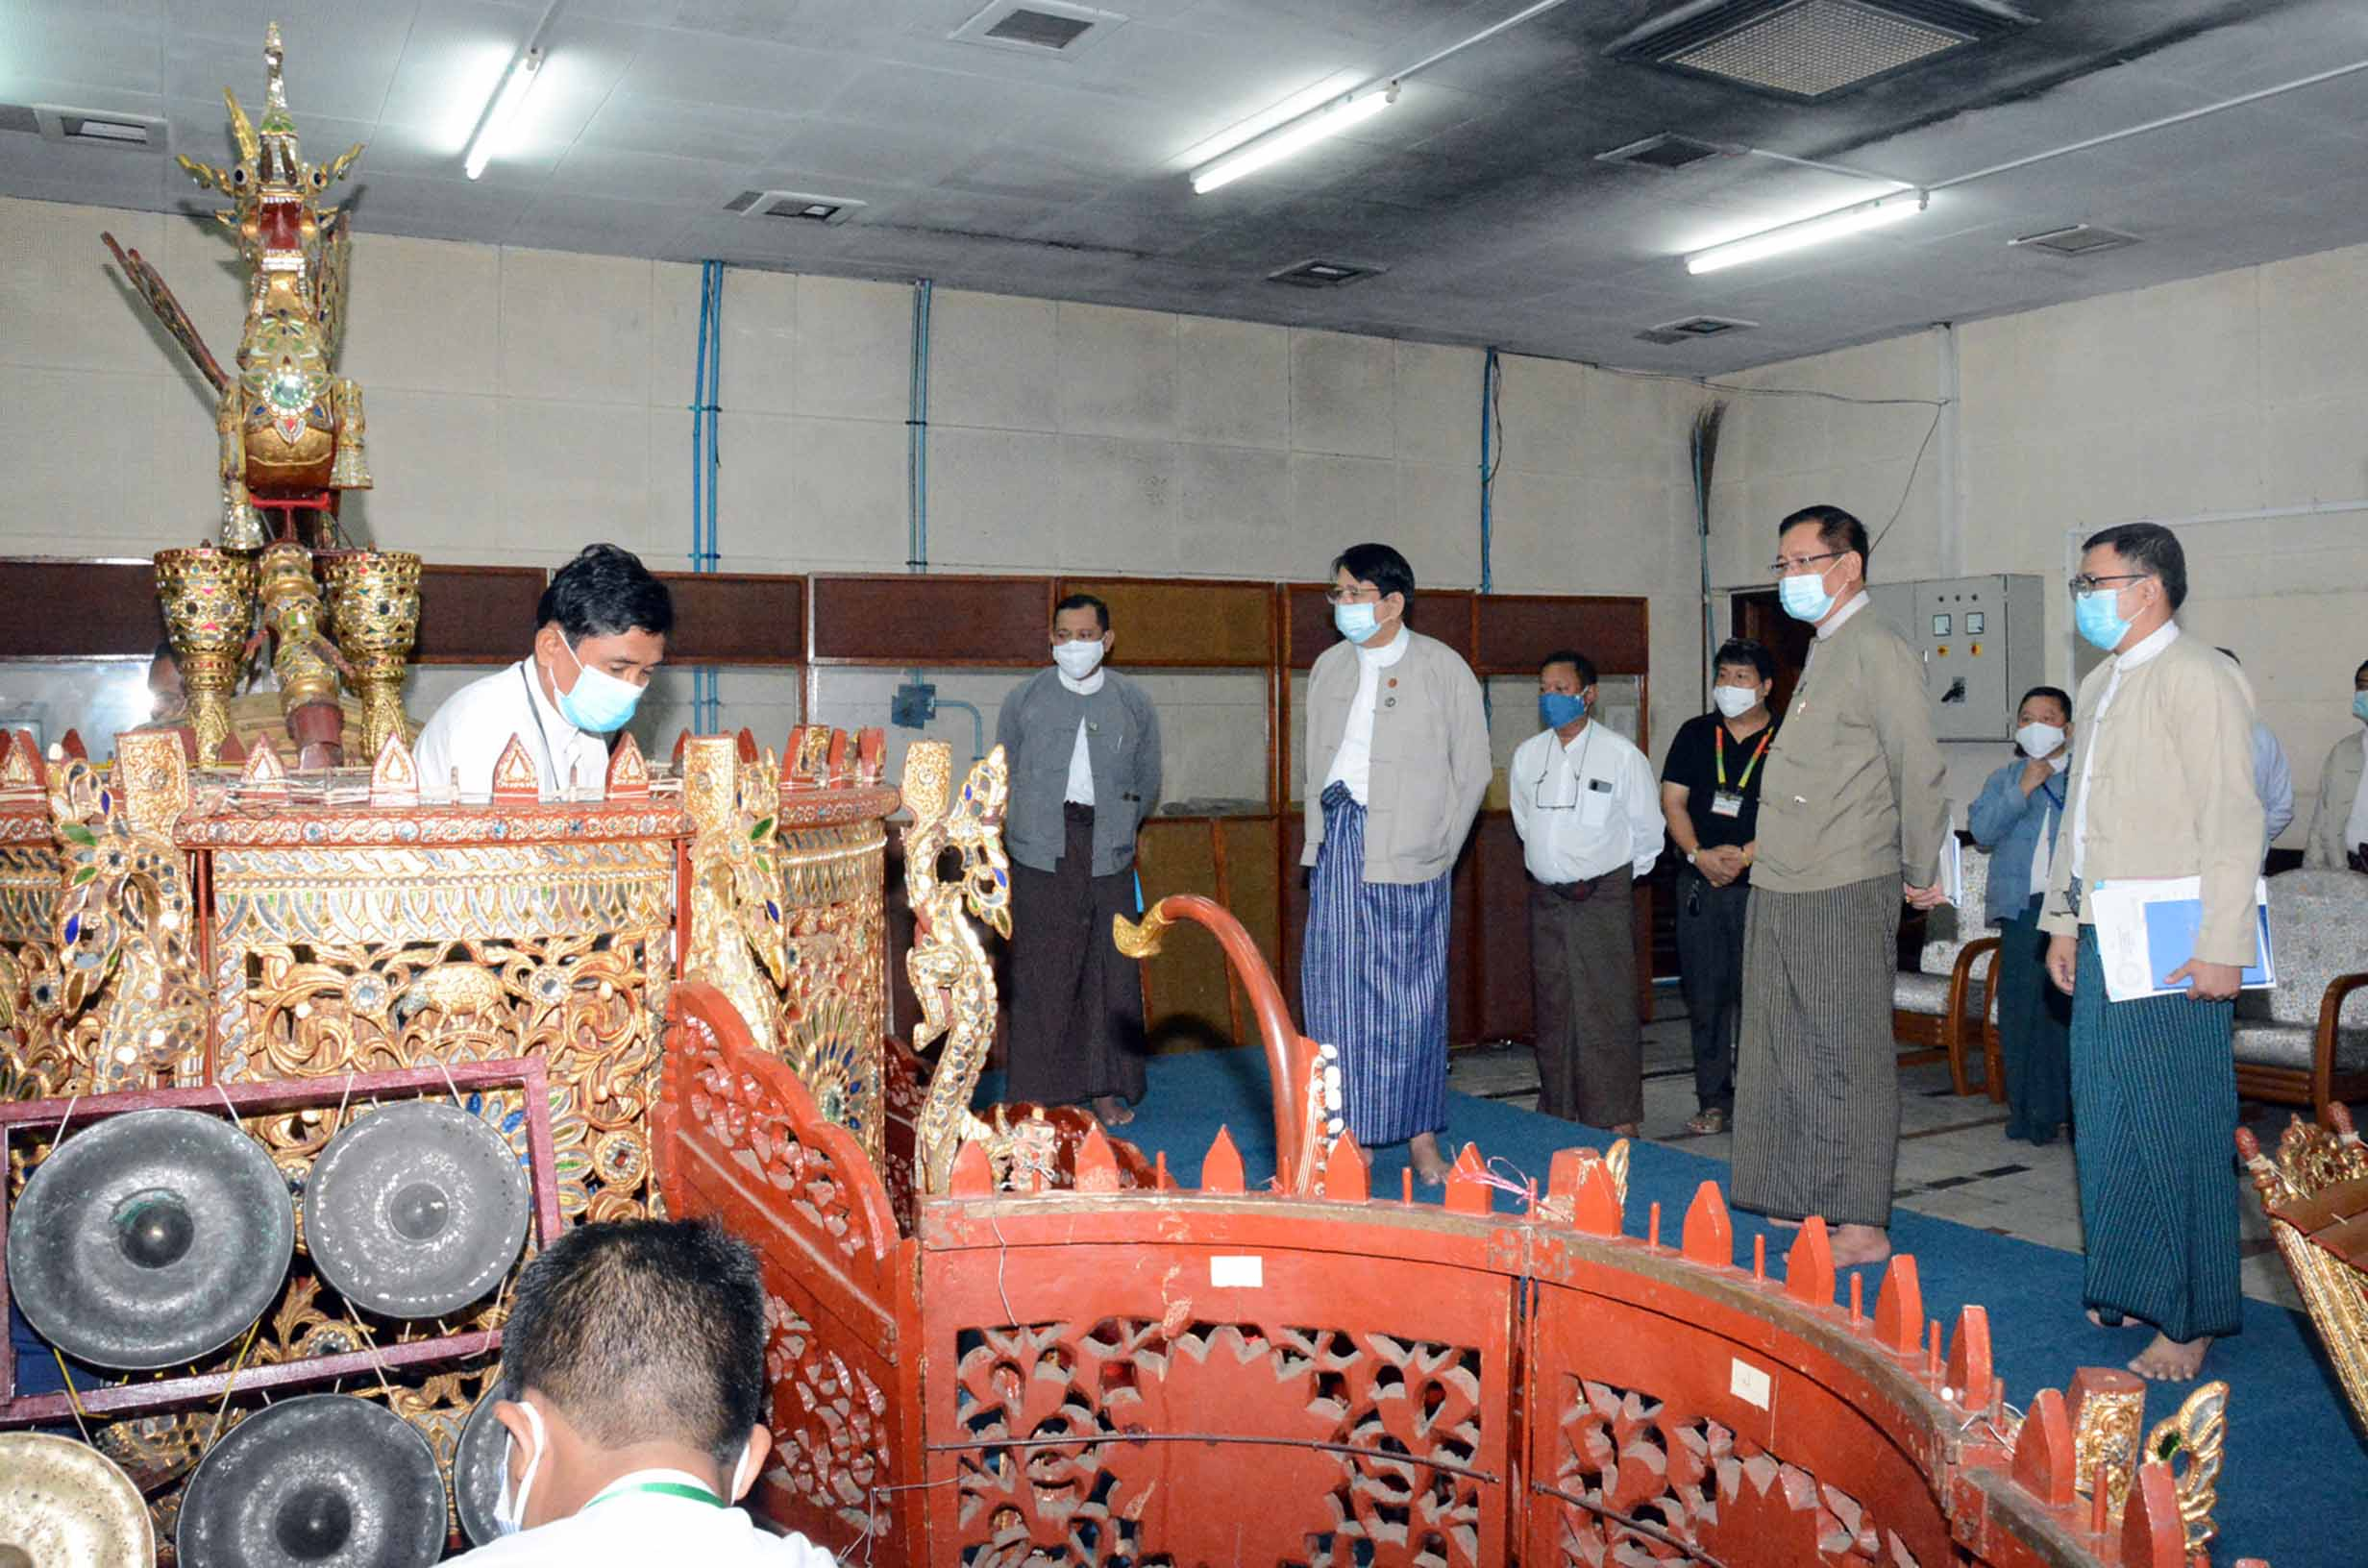 Union Minister Dr Pe Myint inspects the practising of the national symphony orchestra at the Radio Master Room of MRTV in Yangon on 18 July 2020. Photo: MNA